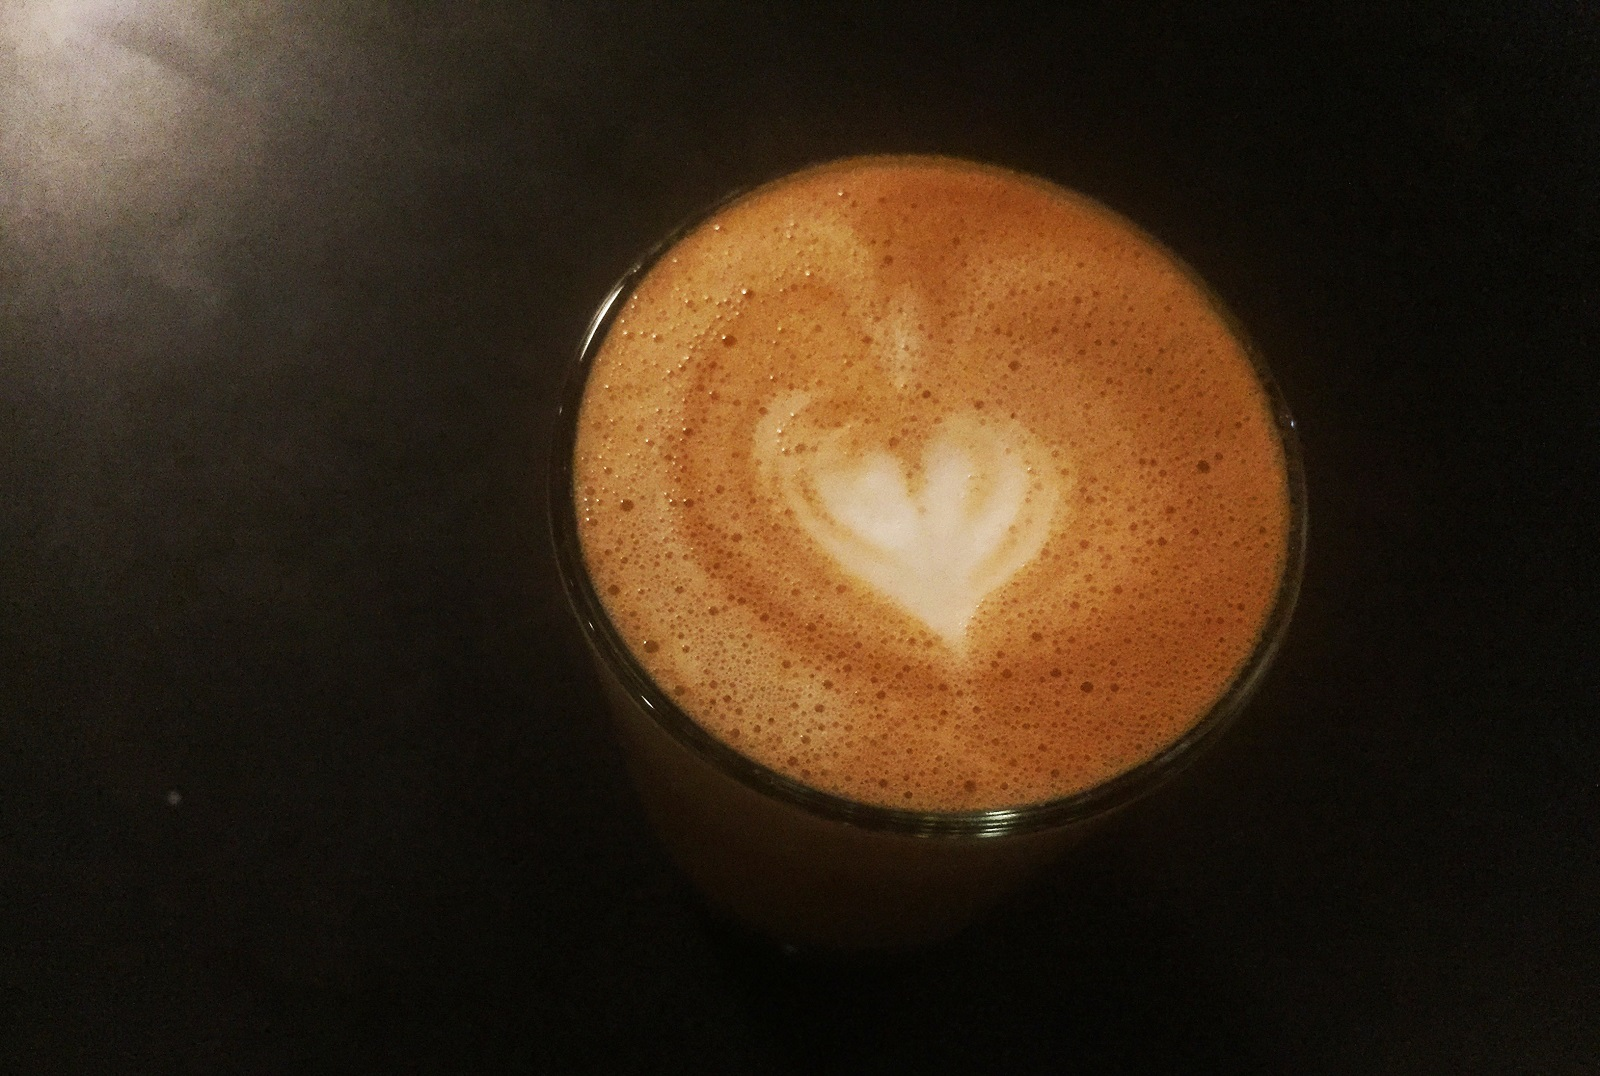 Public Espresso is one of dozens of local options from which to order a cappuccino. Pictured is a Cortado, an espresso drink similar to the cappuccino. (Lizz Schumer/Special to The News)